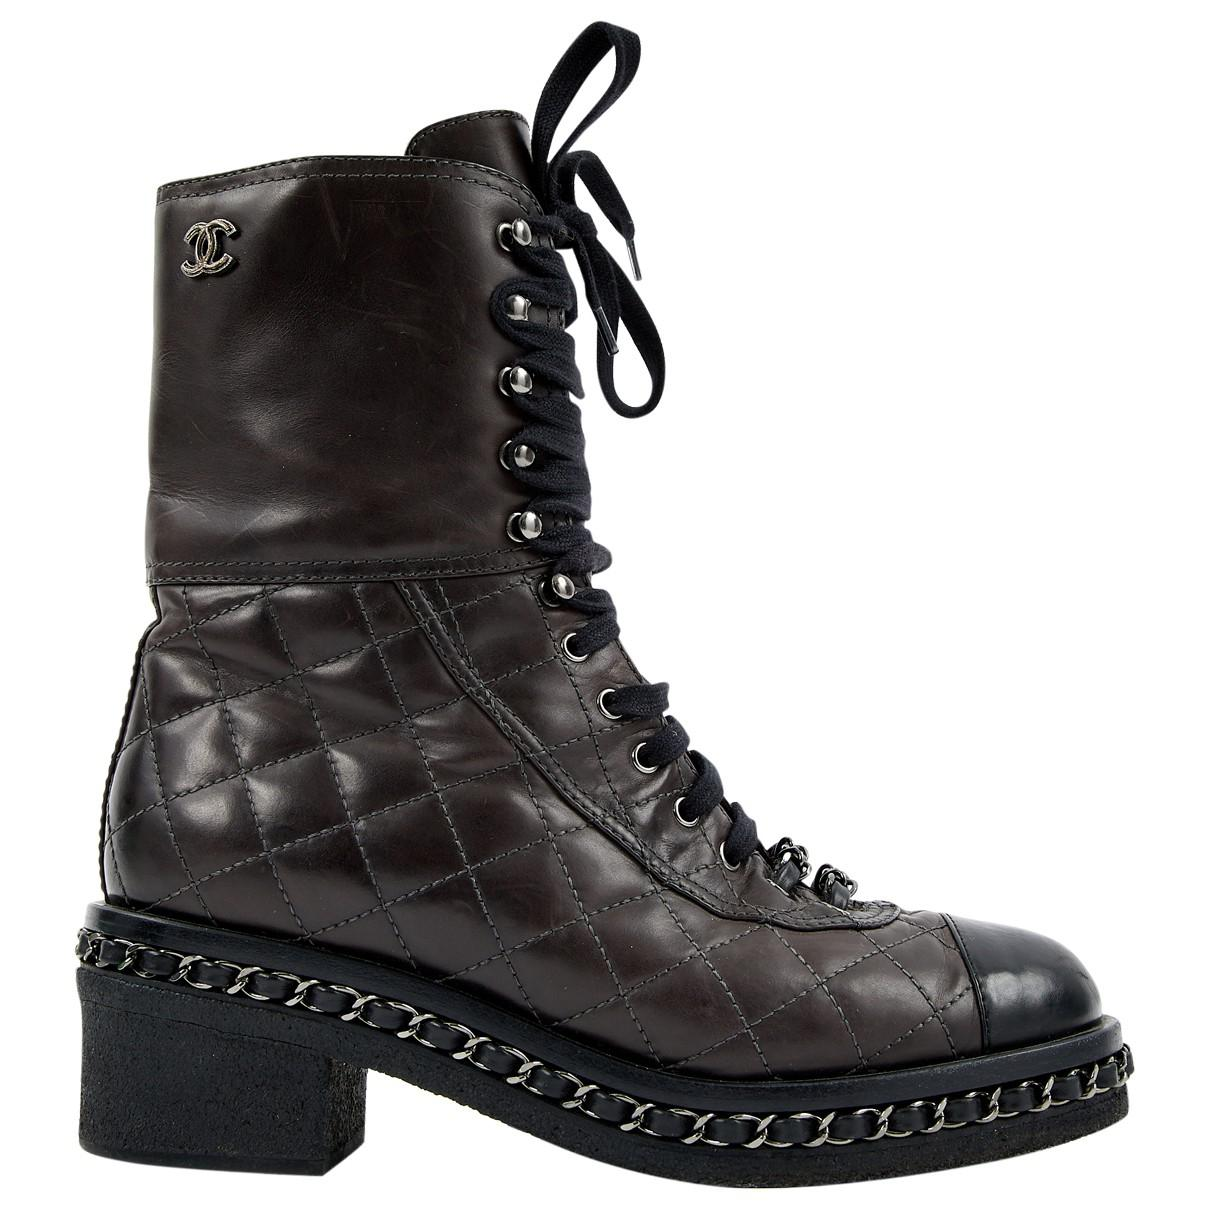 888528d28bc Chanel. Women s Quilted Cap-toe Combat Boots Brown